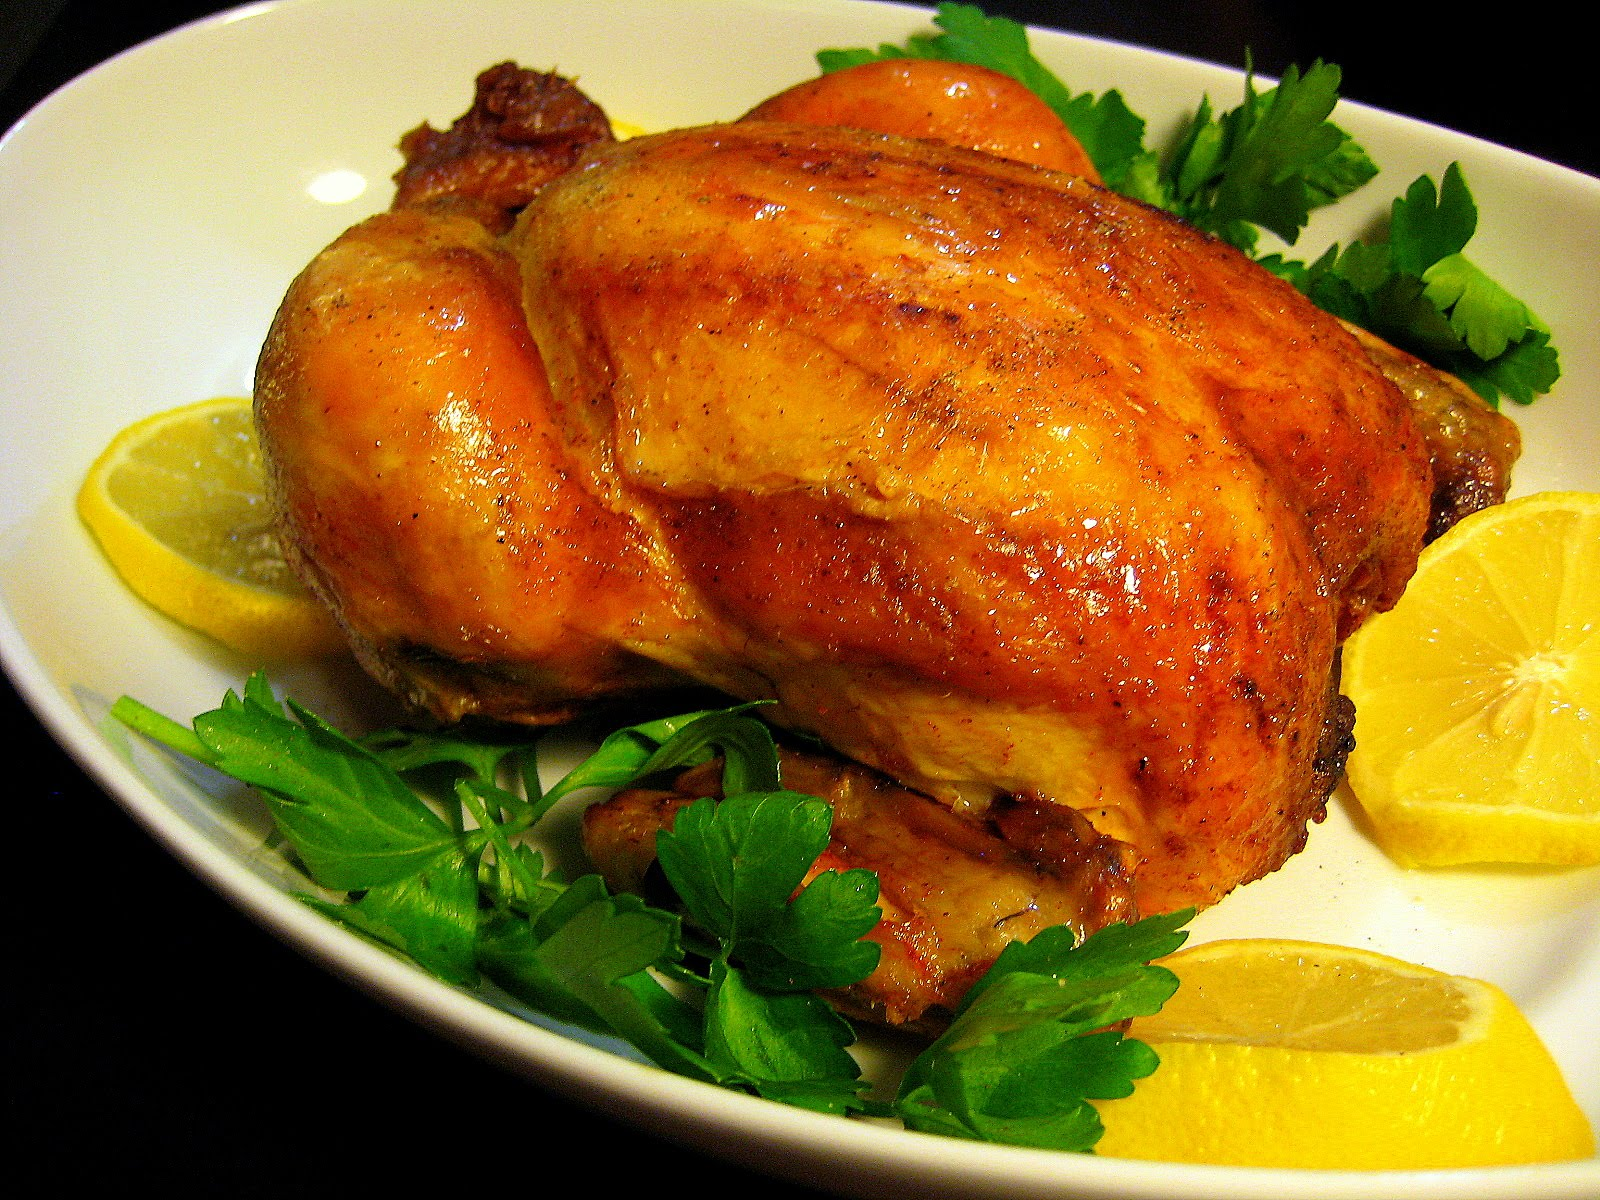 Food Tastes Yummy: HERB ROASTED CHICKEN